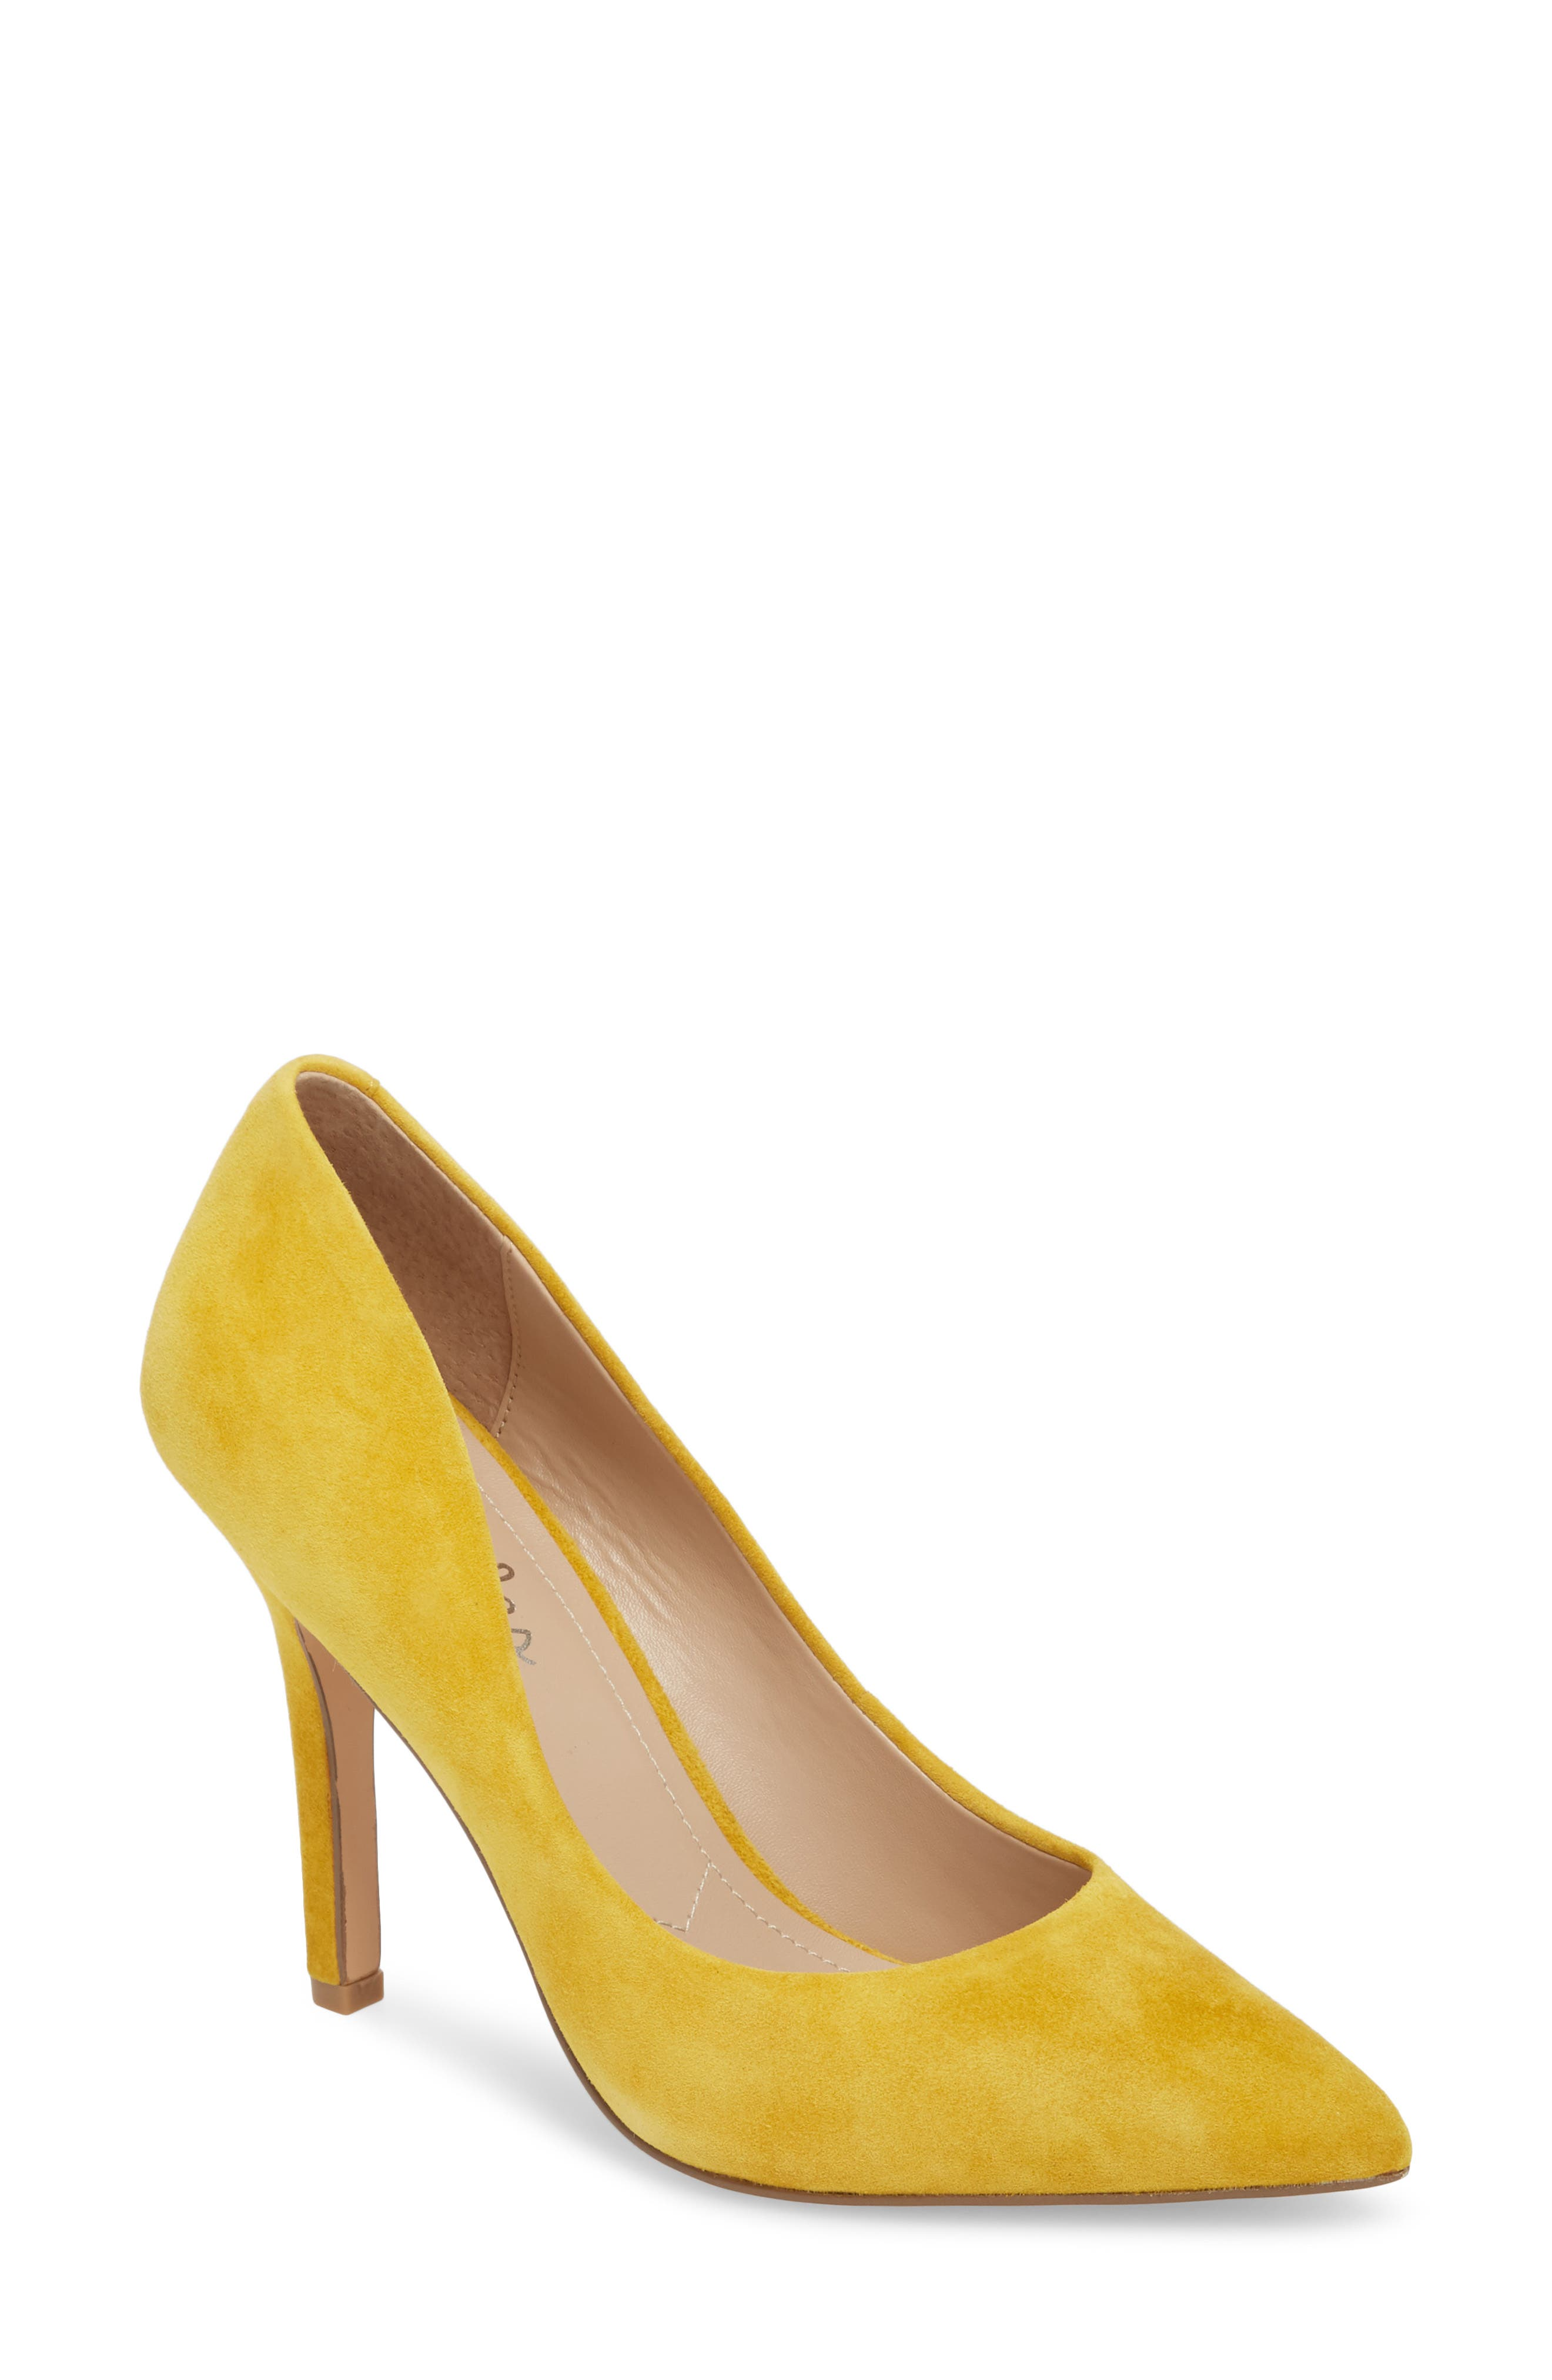 Maxx Pointy Toe Pump,                             Main thumbnail 1, color,                             Canary Suede